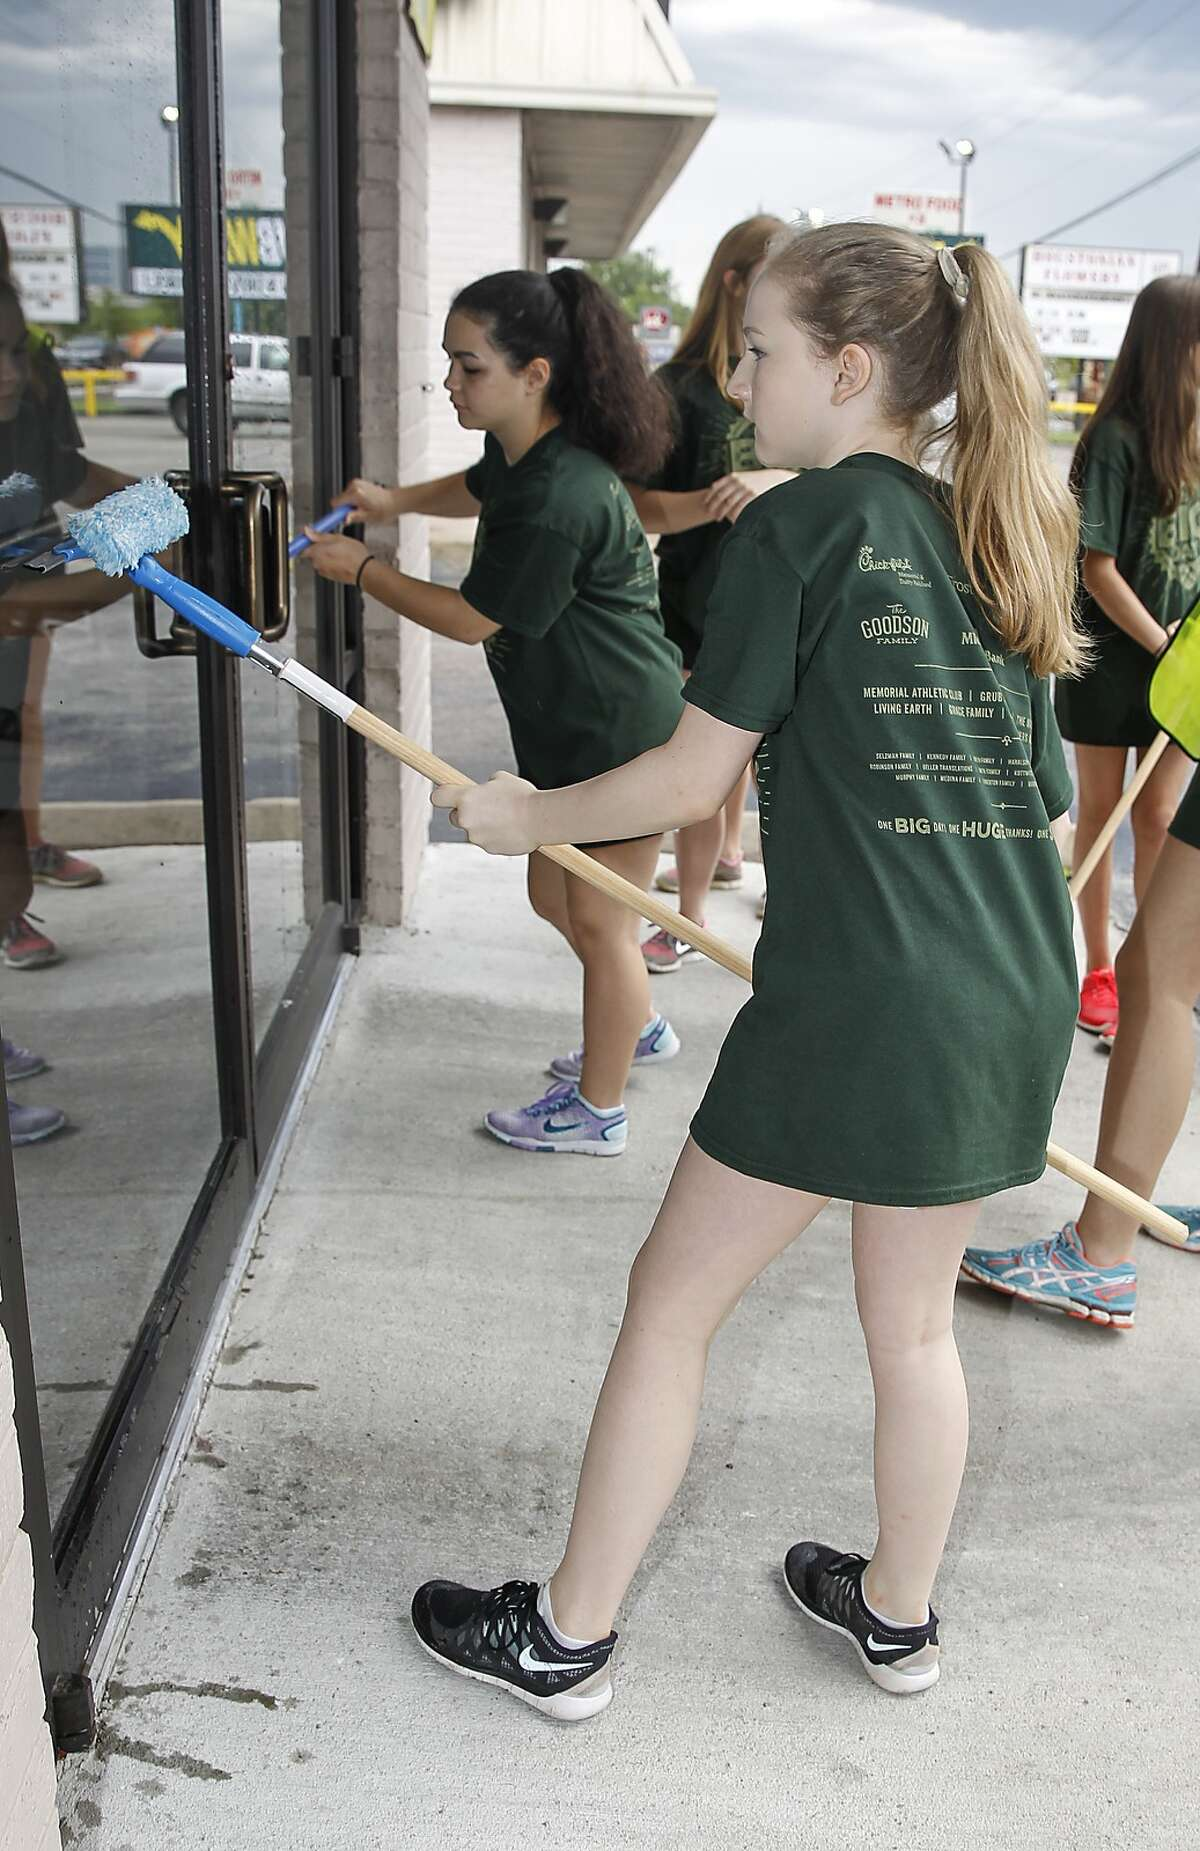 Cheerleader Robin Graves cleans windows at a local business as part of Stratford's Big Day, a student run volunteer initiative where hundreds of Stratford students will be working on improvement projects for local businesses, needy individuals and at the school on April 25, 2015.